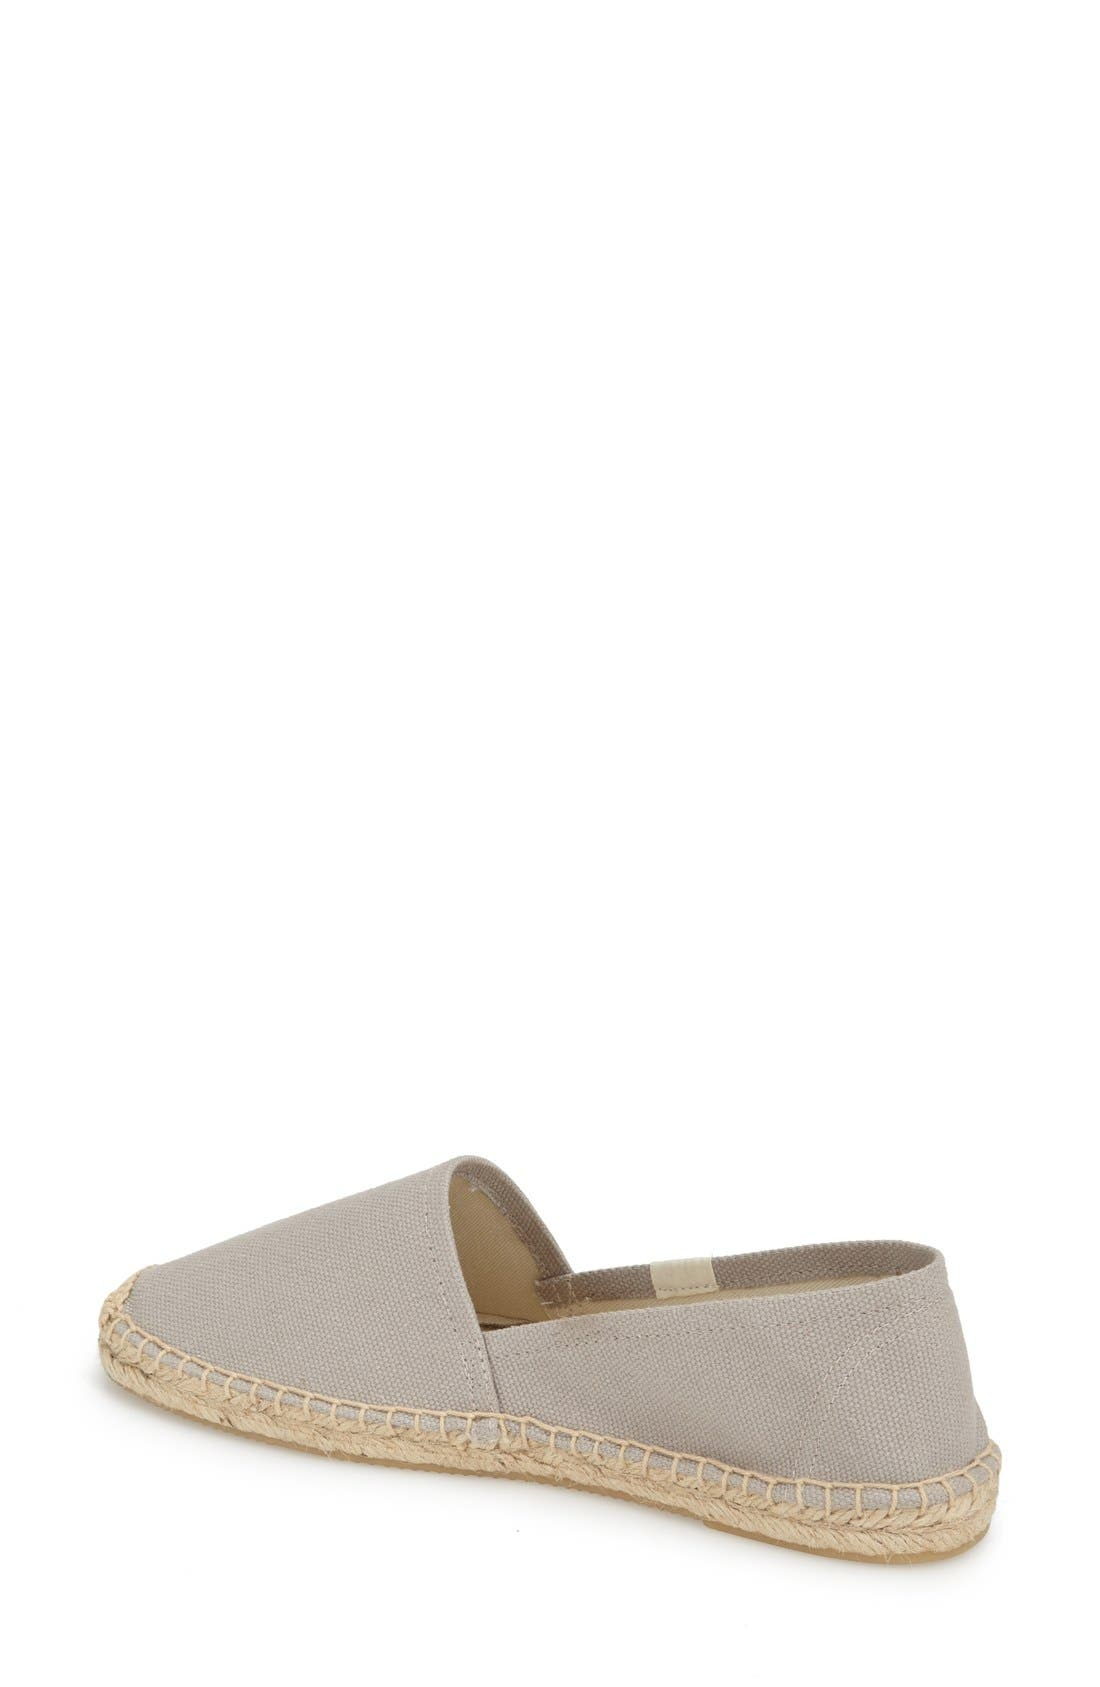 SOLUDOS, 'Original Dali' Espadrille Slip-On, Alternate thumbnail 4, color, GREY CANVAS